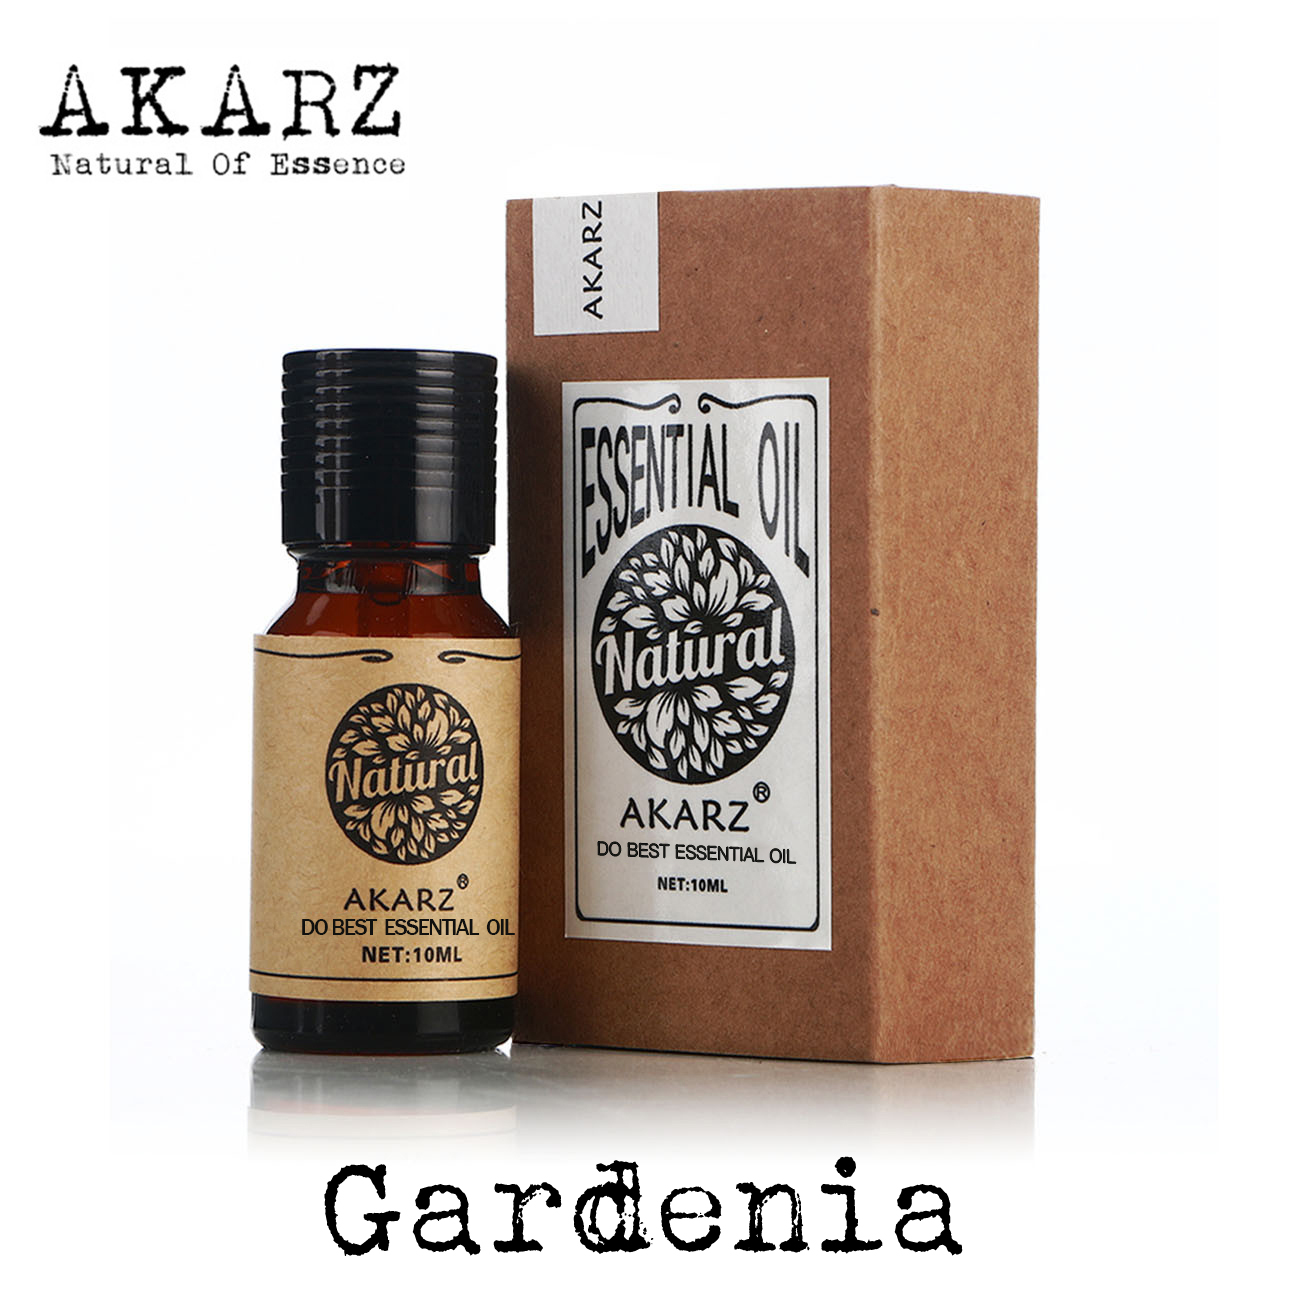 Gardenia Essential Oil AKARZ Brand Natural Oiliness Cosmetics Candle Soap Scents Making DIY Odorant Raw Material Gardenia Oil